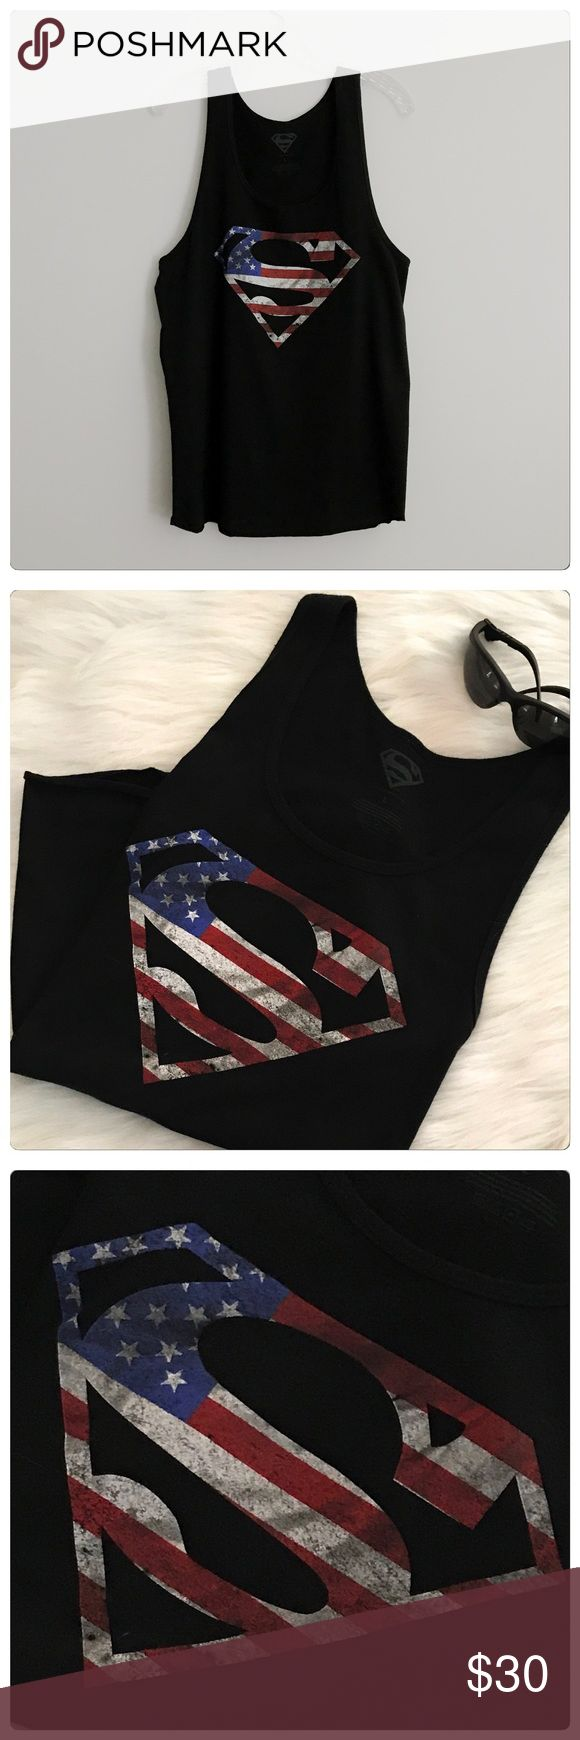 JUST IN! NWT Men's Black Patriotic Tank Top This is a really nice top! It is nice and lightweight for summer! Perfect for a vacation or just hanging out! The material is soft and comfy Boutique Shirts Tank Tops